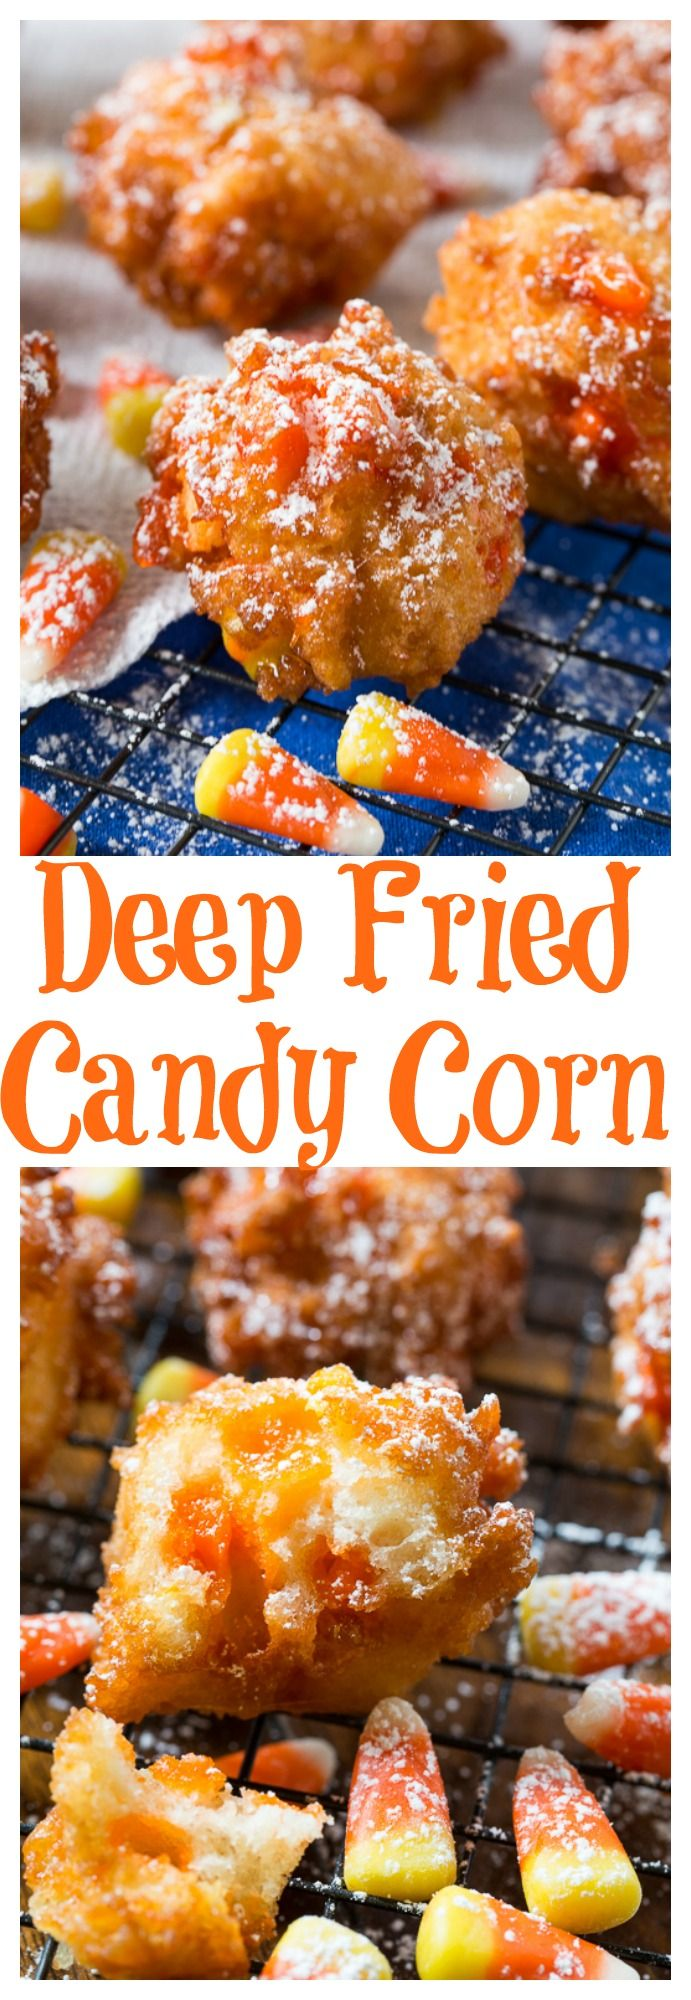 Deep Fried Candy Corn -surpirisingly delicious!